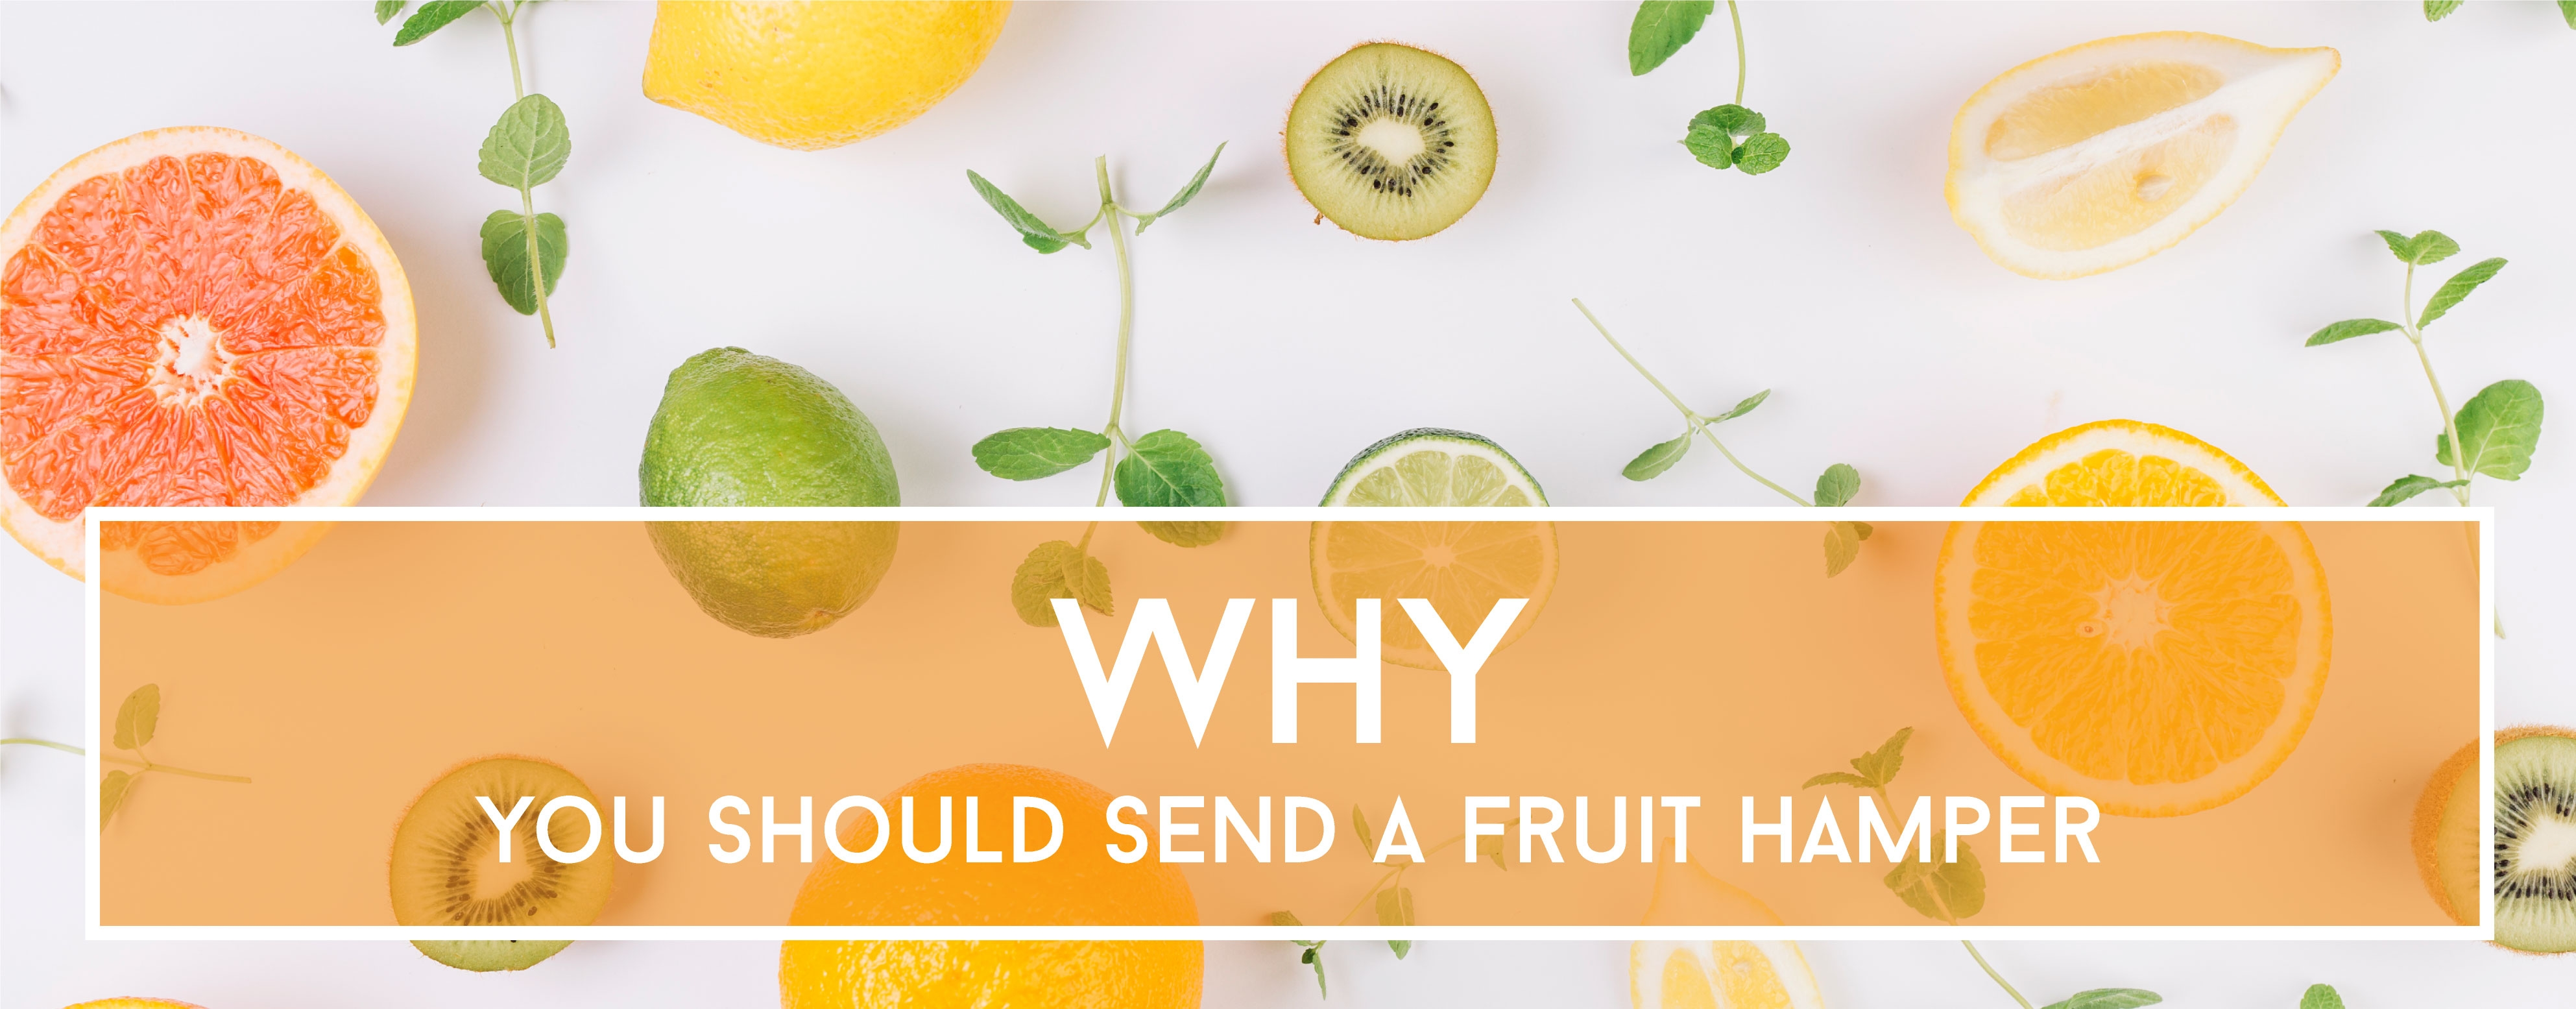 HWhy you should send a fruit hamper?